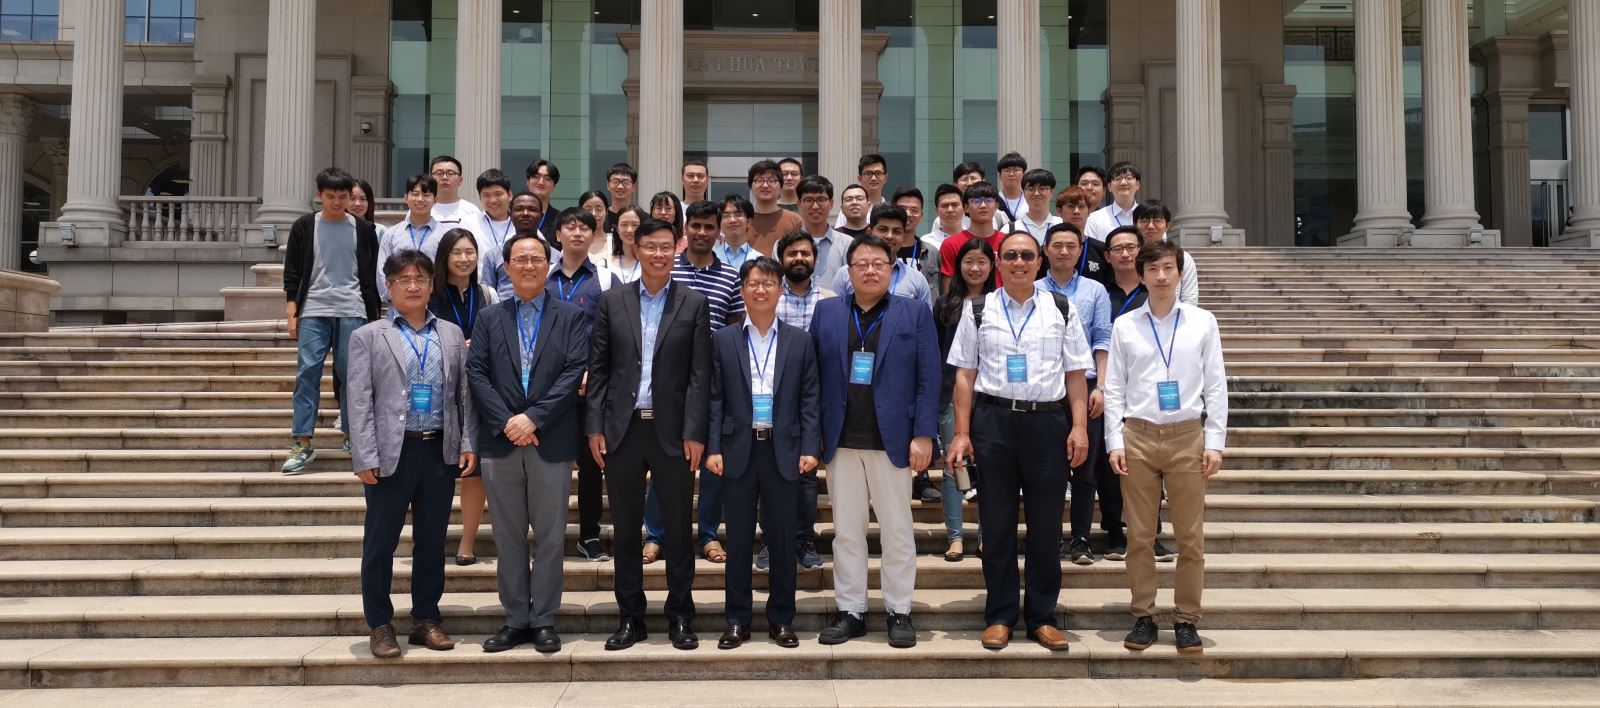 The 6th Fudan University-Hanyang University Joint Workshop